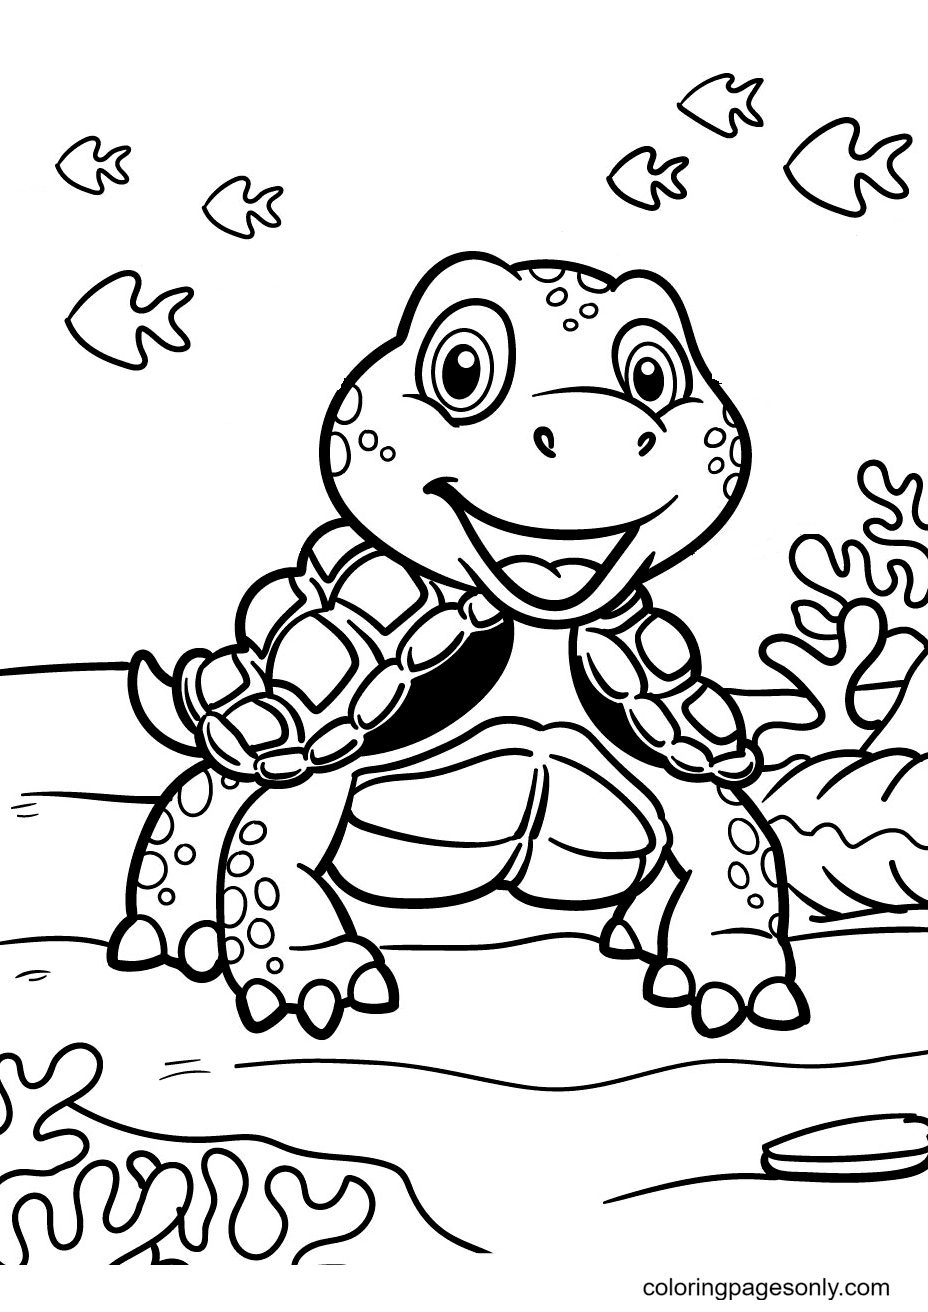 Turtle in the Ocean With Coral Coloring Page